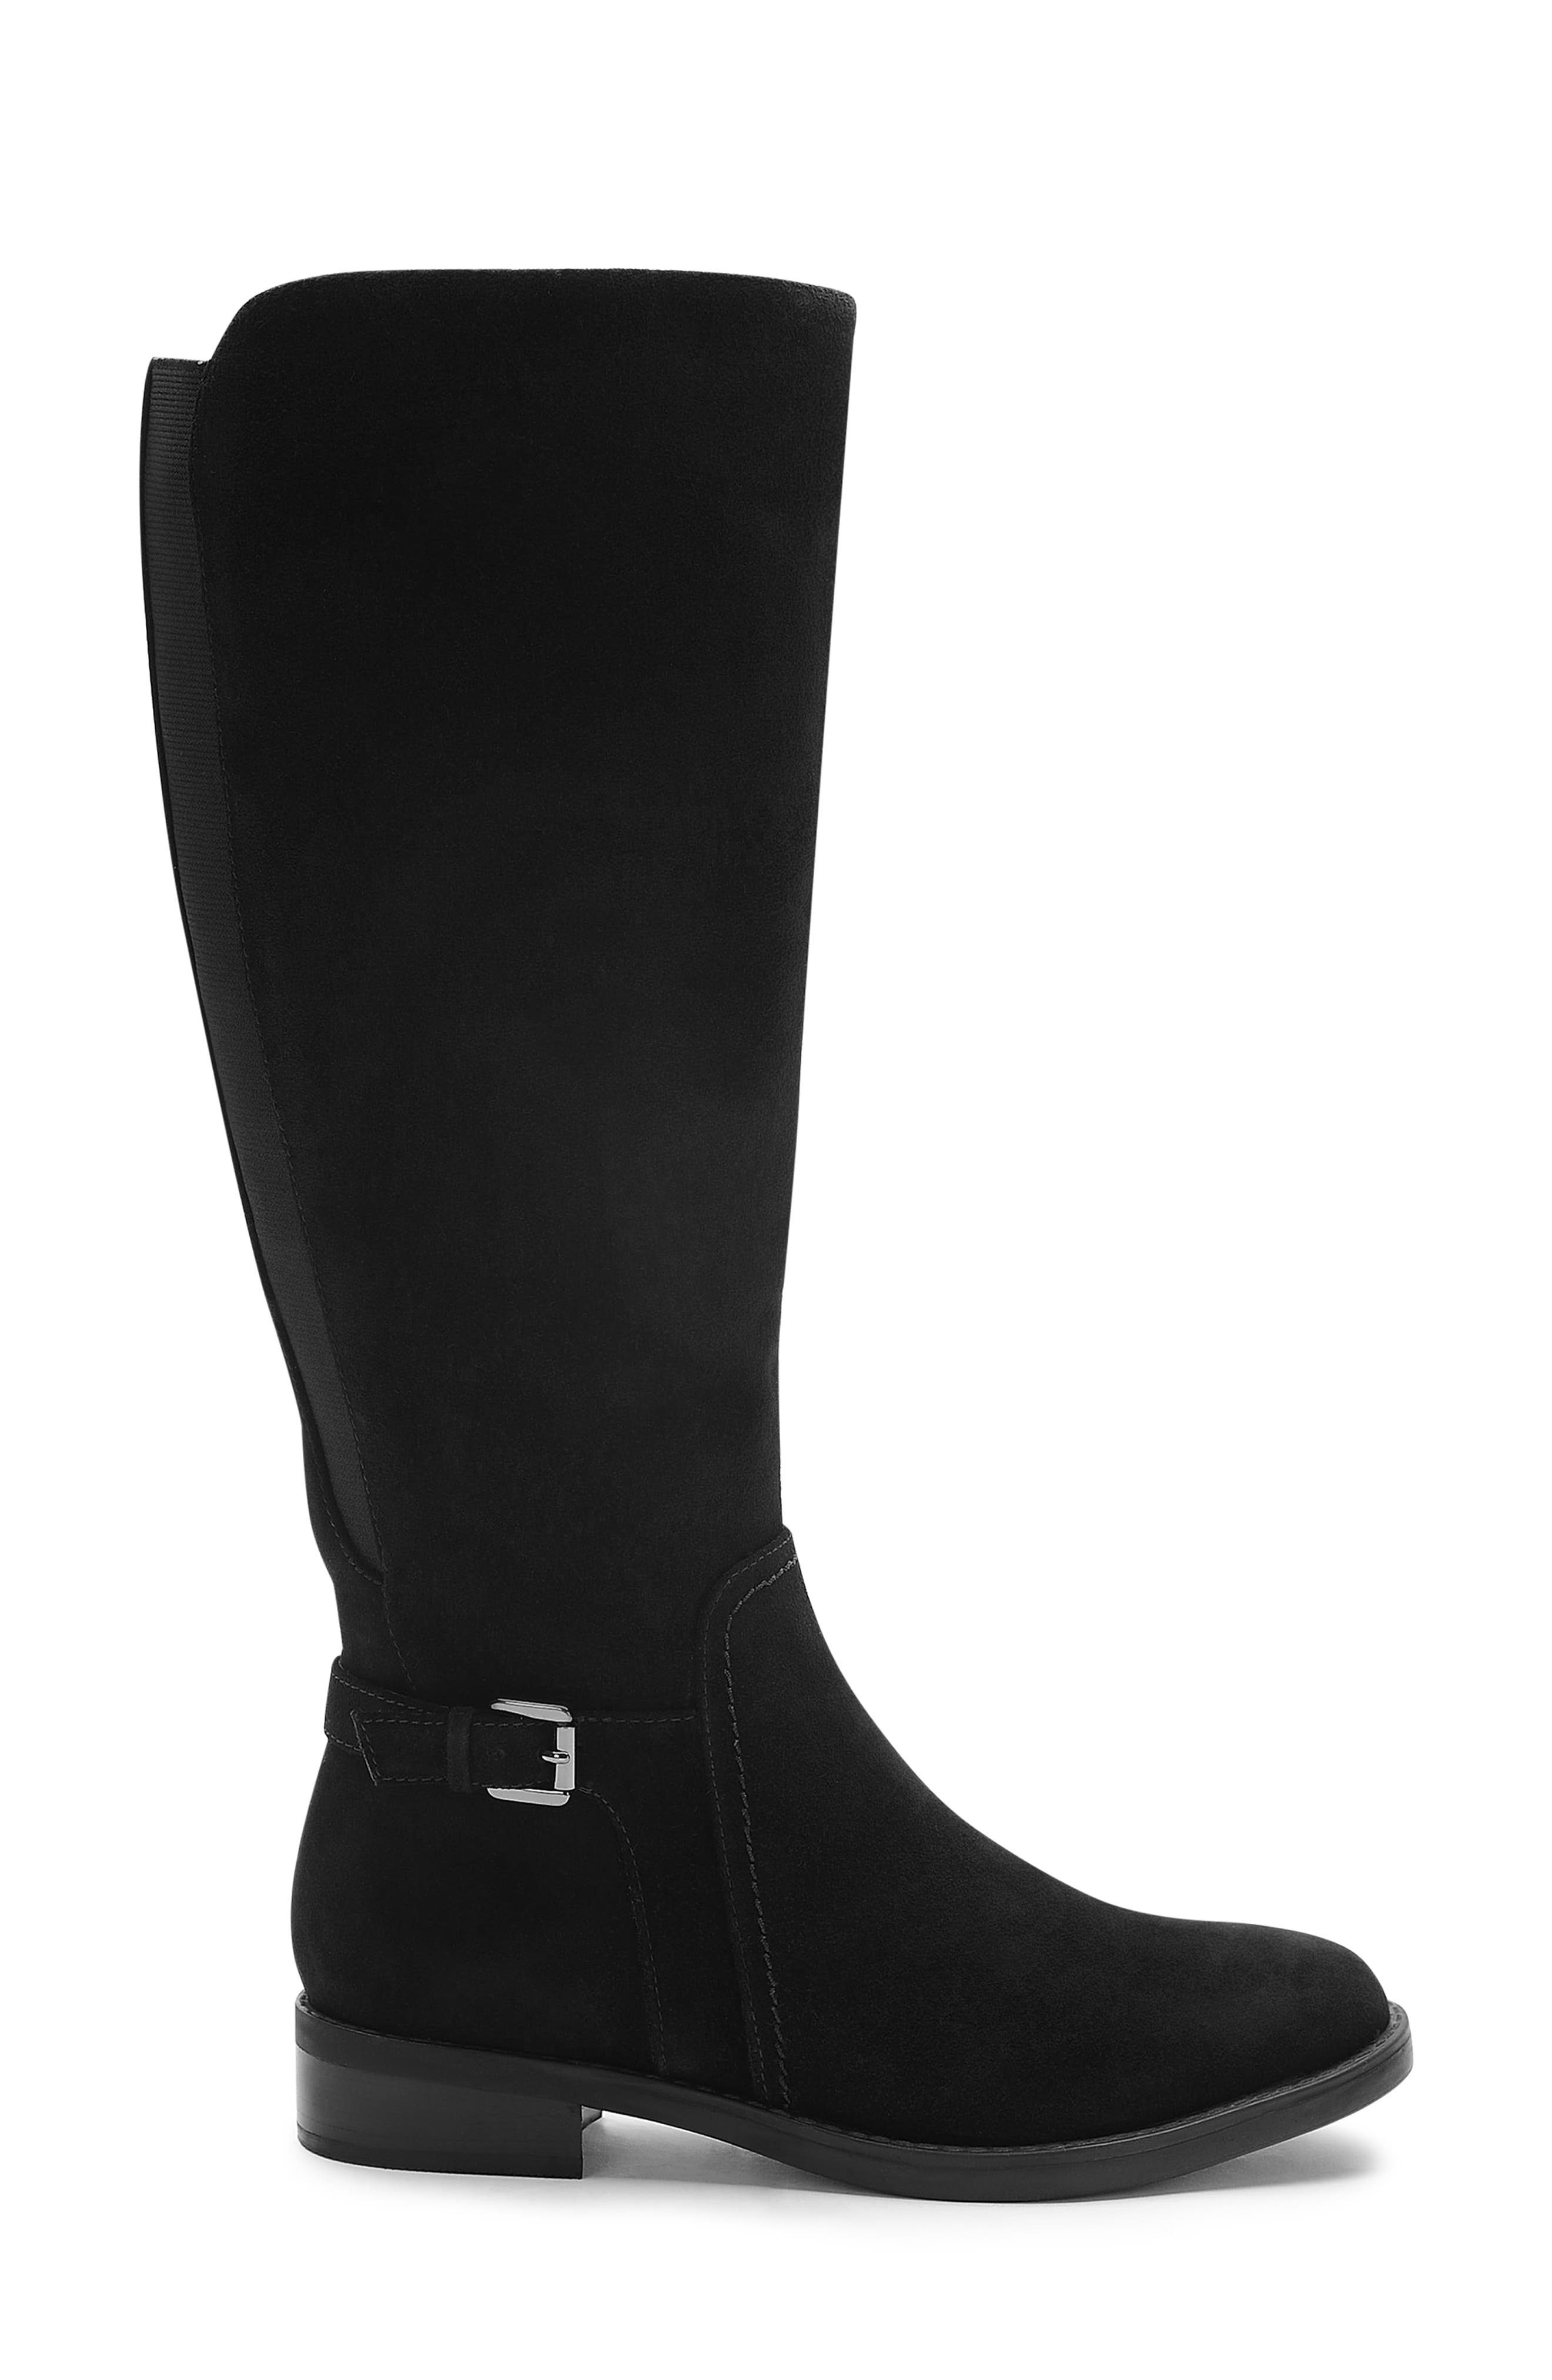 Evie Riding Waterproof Boot,                             Alternate thumbnail 3, color,                             BLACK SUEDE